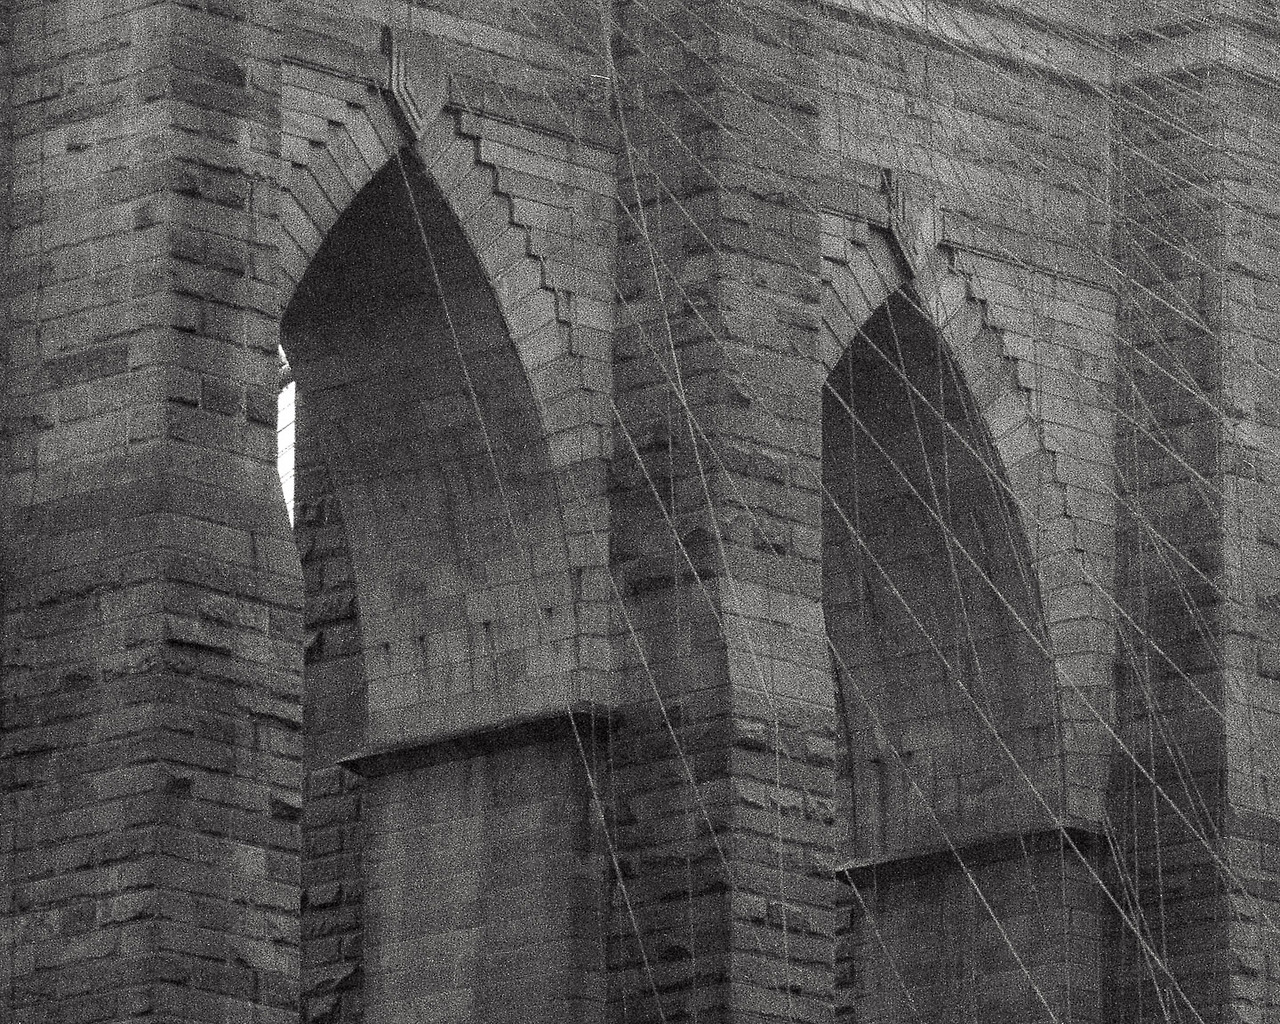 Shot on my first handmade camera. Brooklyn Bridge.